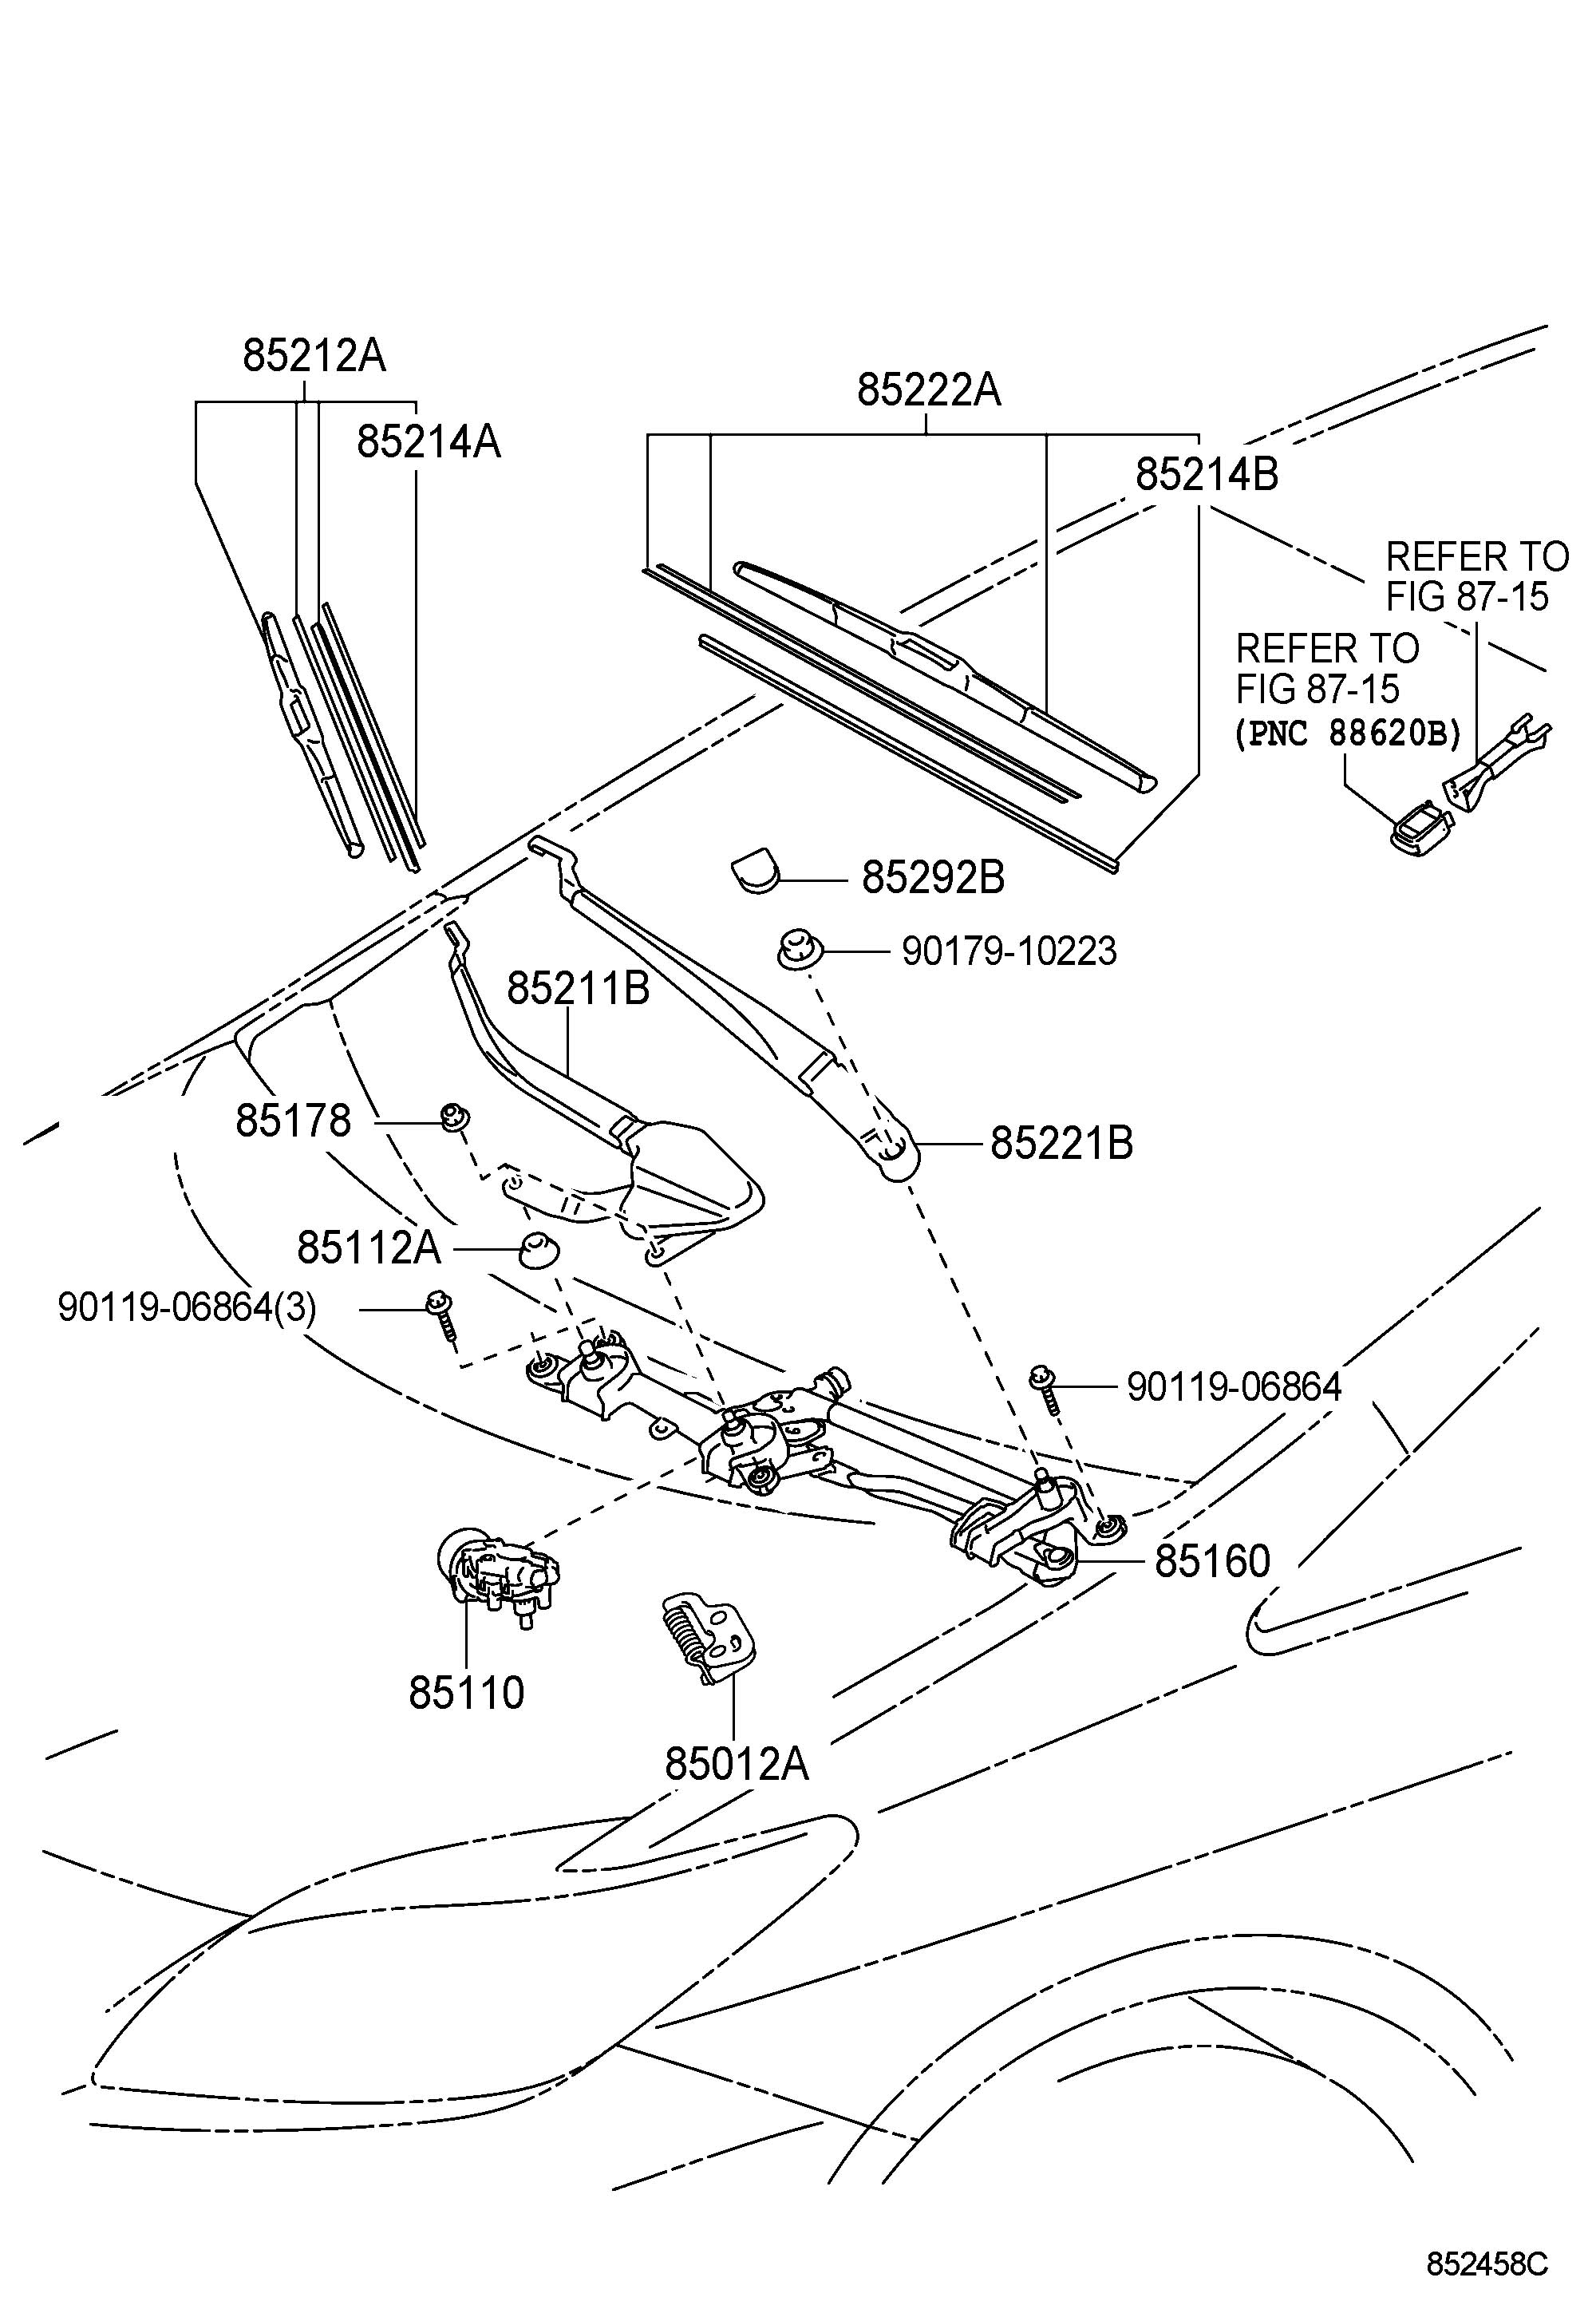 2008 Toyota Sienna Parts Diagram Dash. Toyota. Auto Wiring